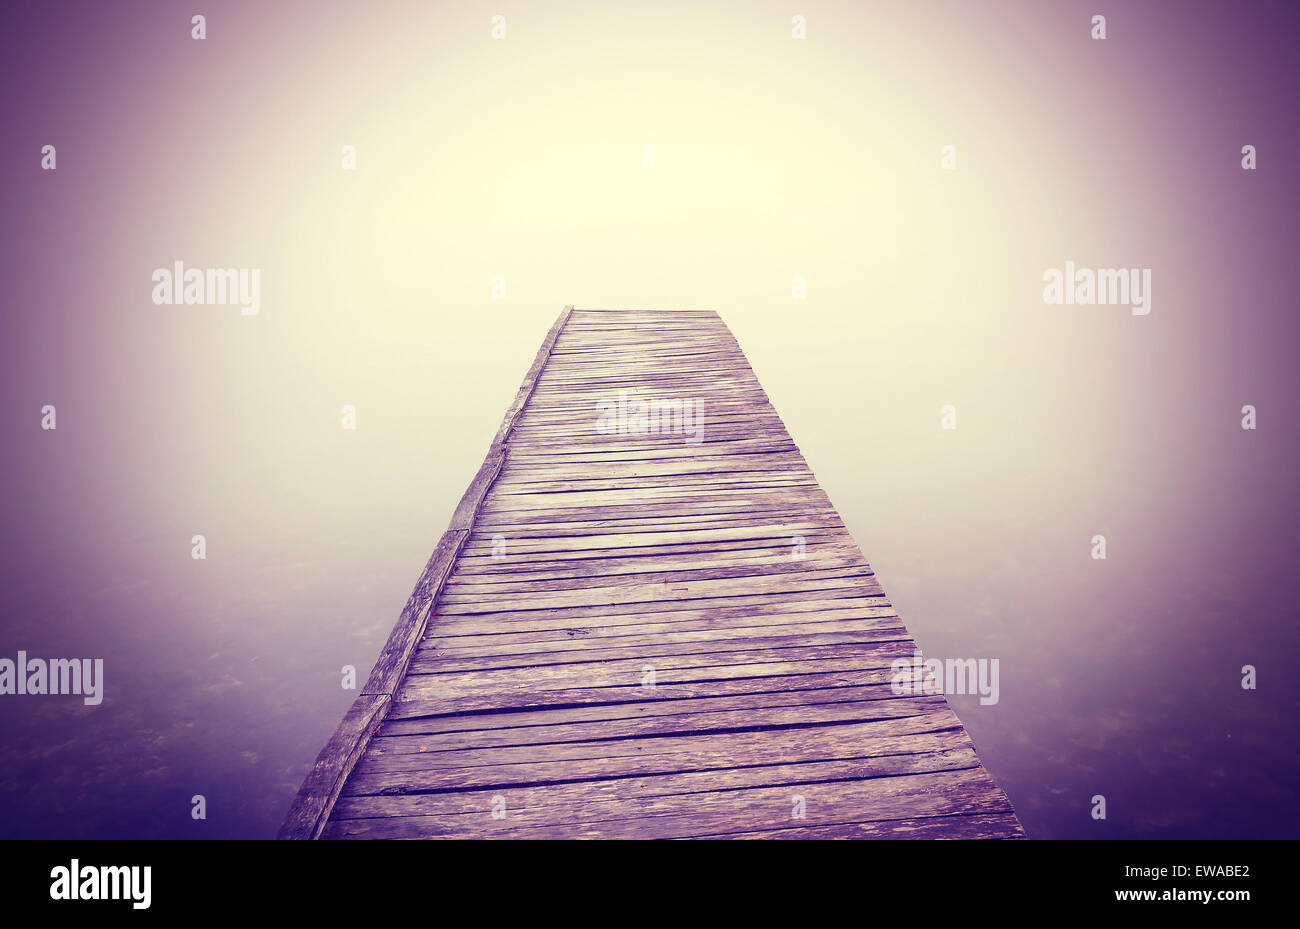 Vintage filtered picture of old wooden pier in dense fog with strong vignette effect. - Stock Image